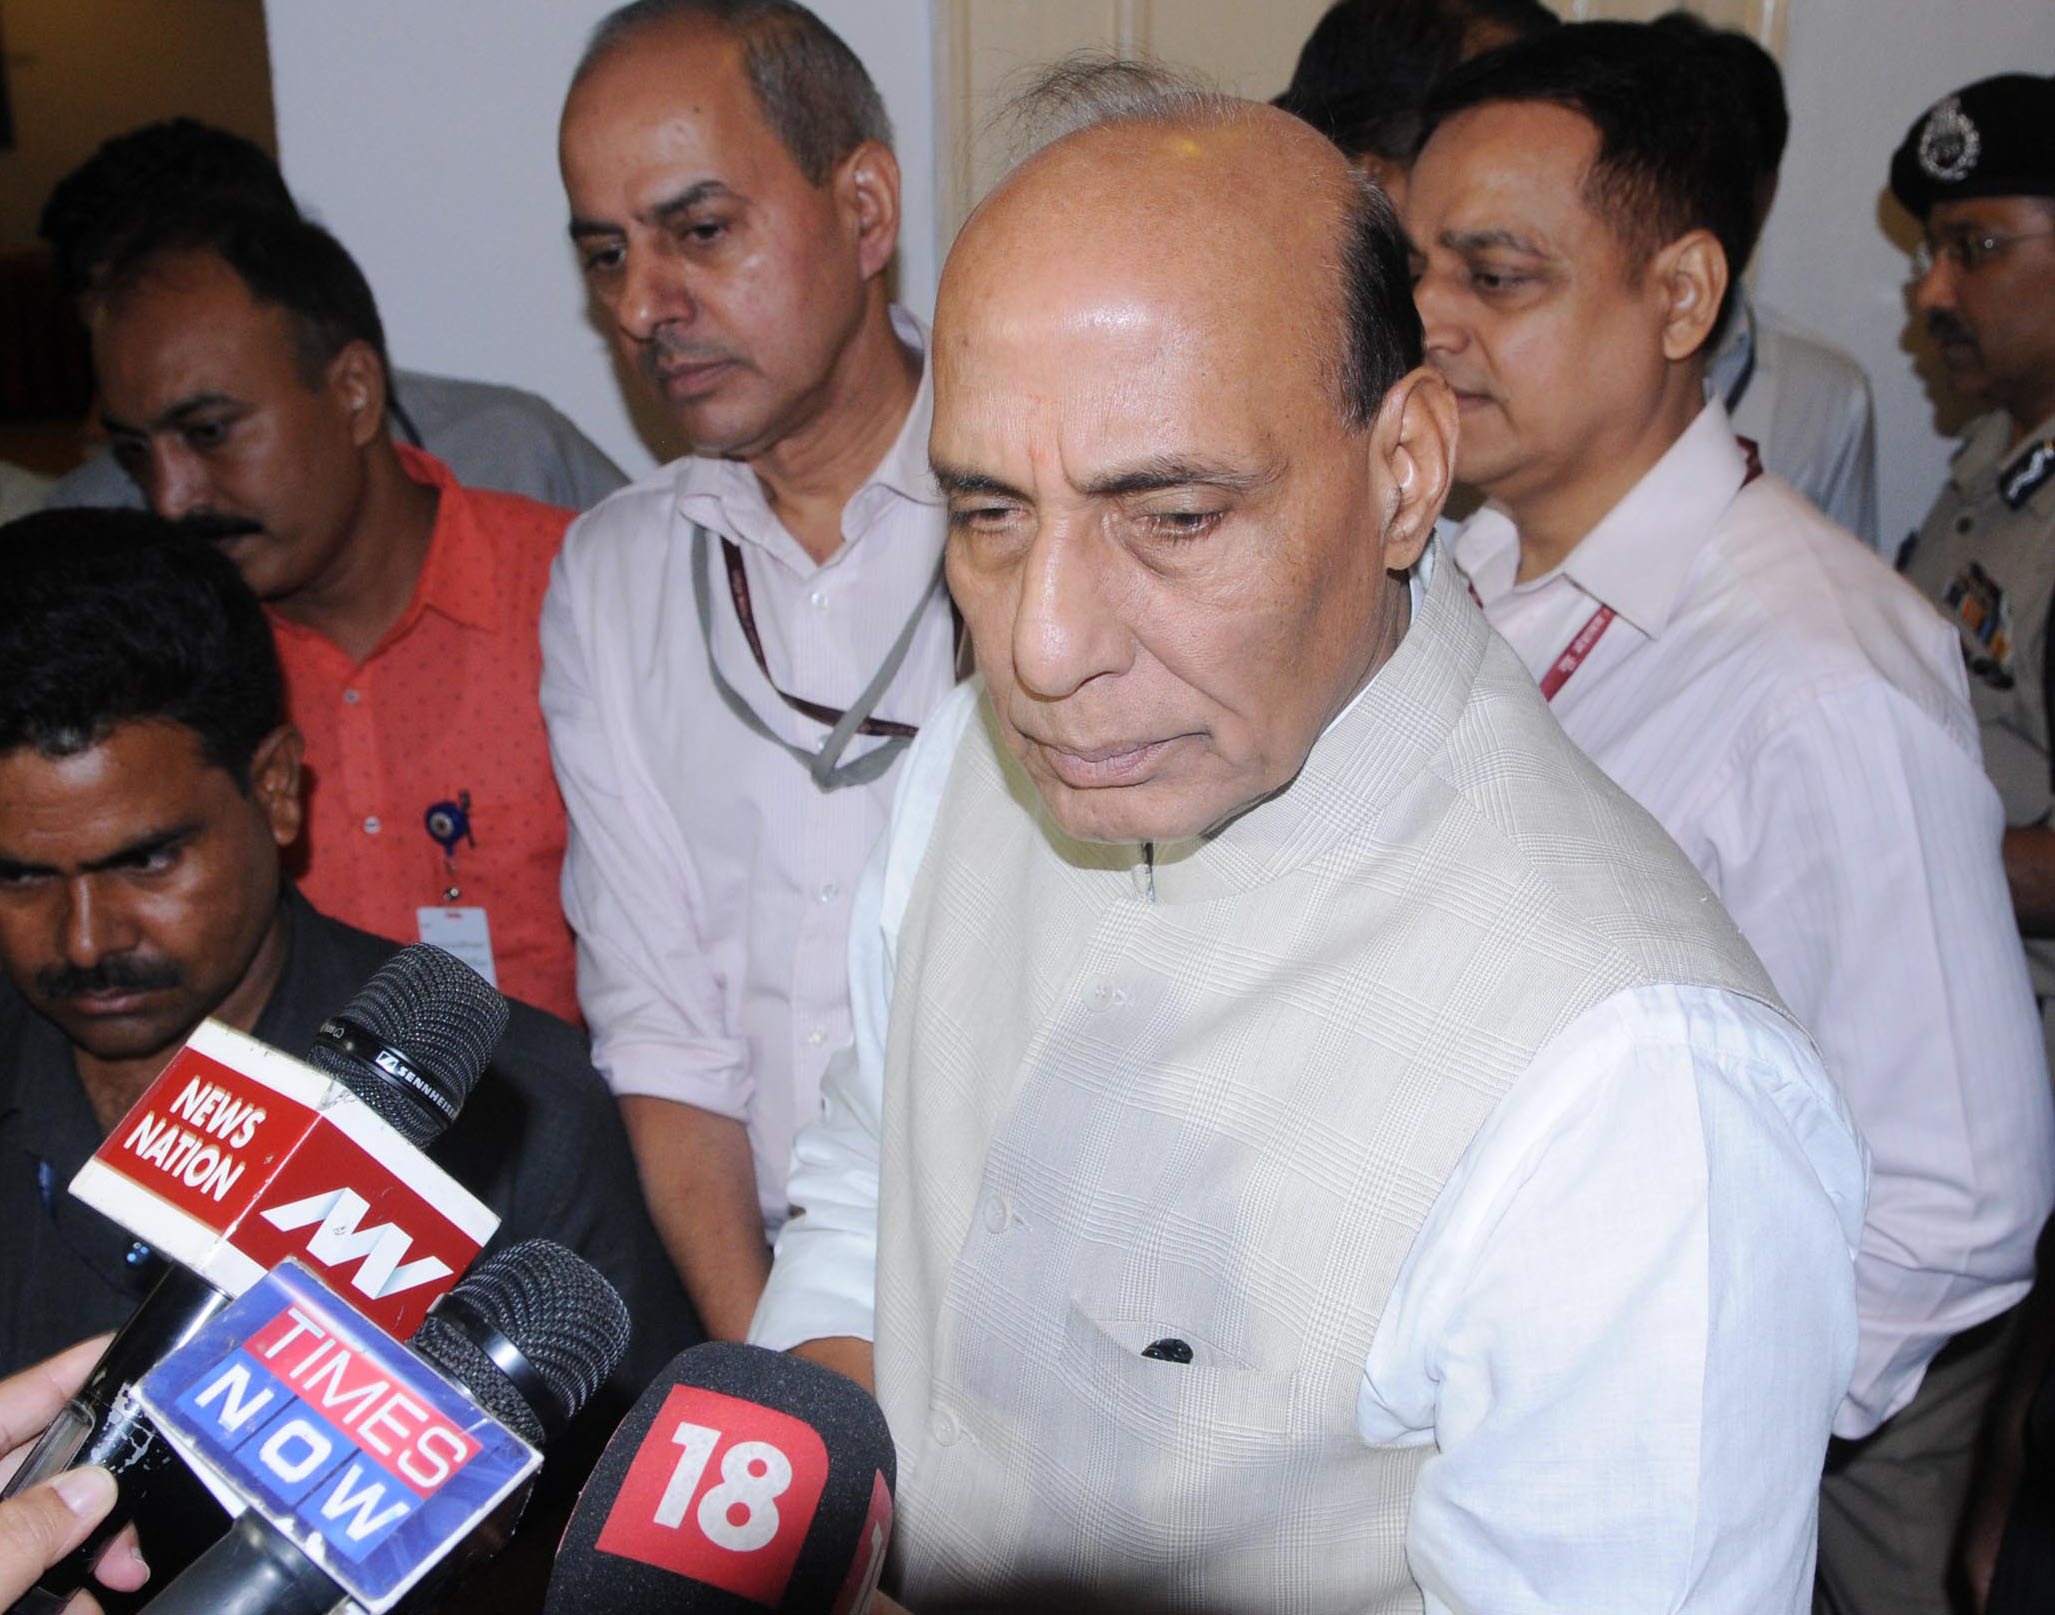 The Union Home Minister, Shri Rajnath Singh interacting with the media after the inaugural ceremony of the 1st National Conference of Investigating Agencies, in New Delhi on August 12, 2016.